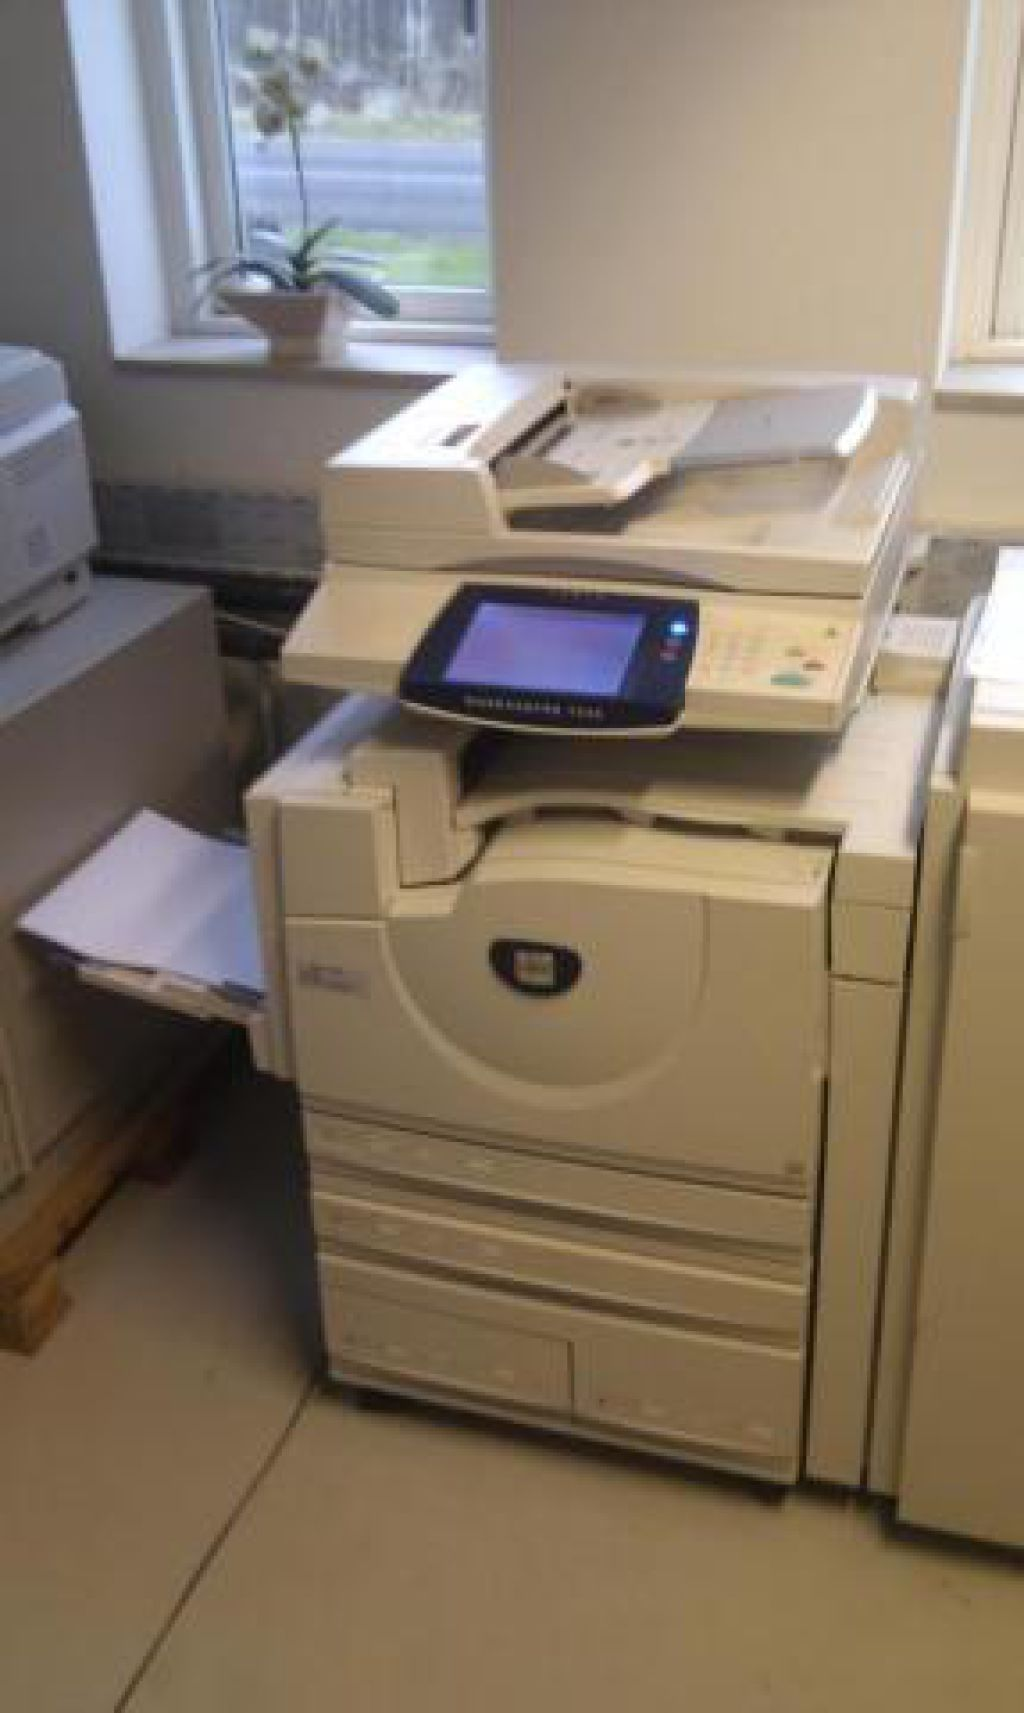 XEROX WORKCENTRE 7345 PS DRIVER FOR WINDOWS